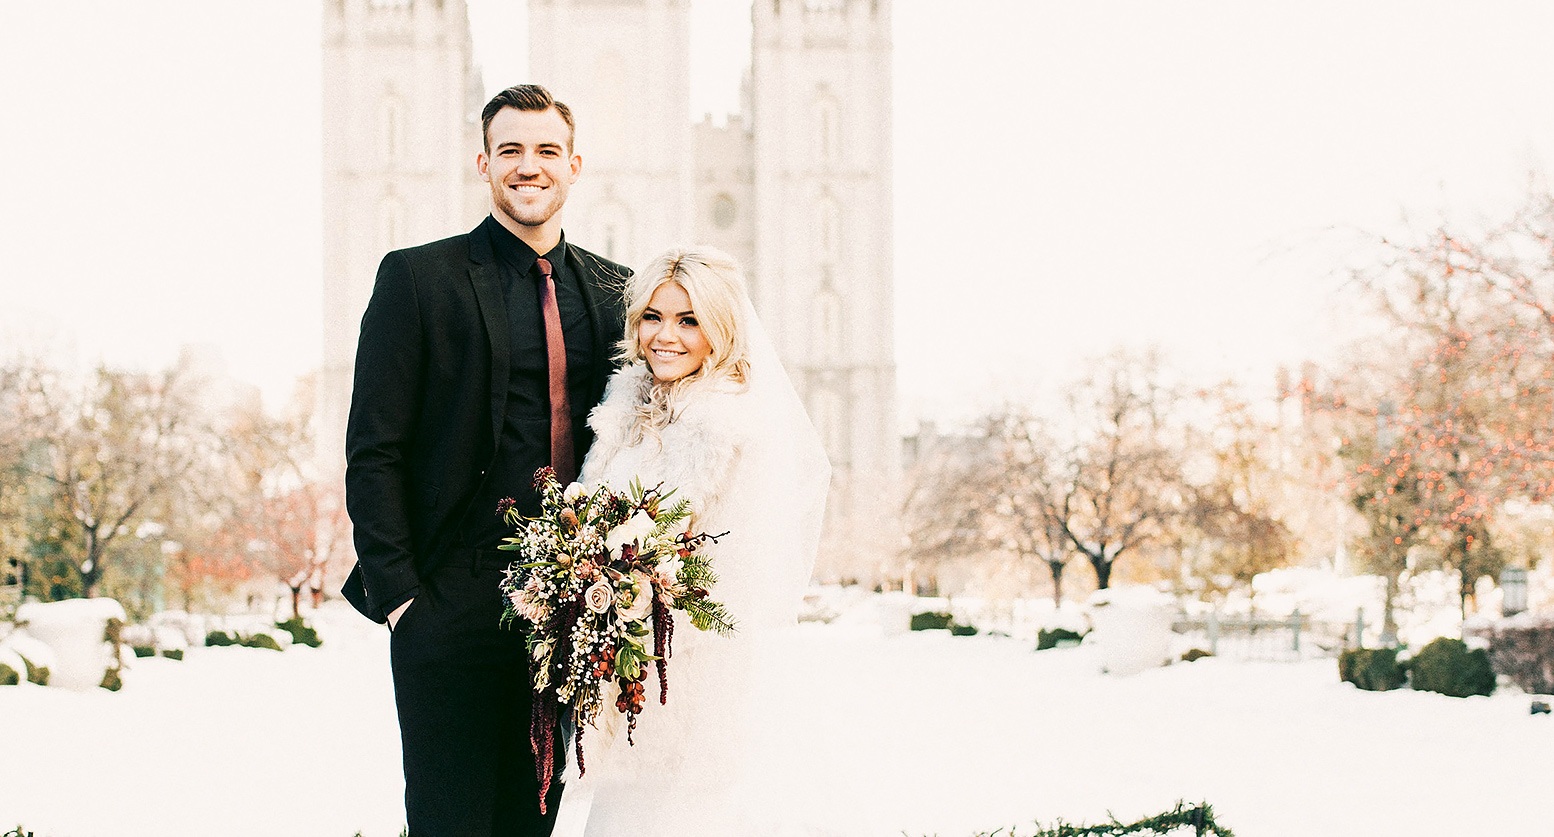 Witney Carson Marries Carson Mcallister On New Year S Day